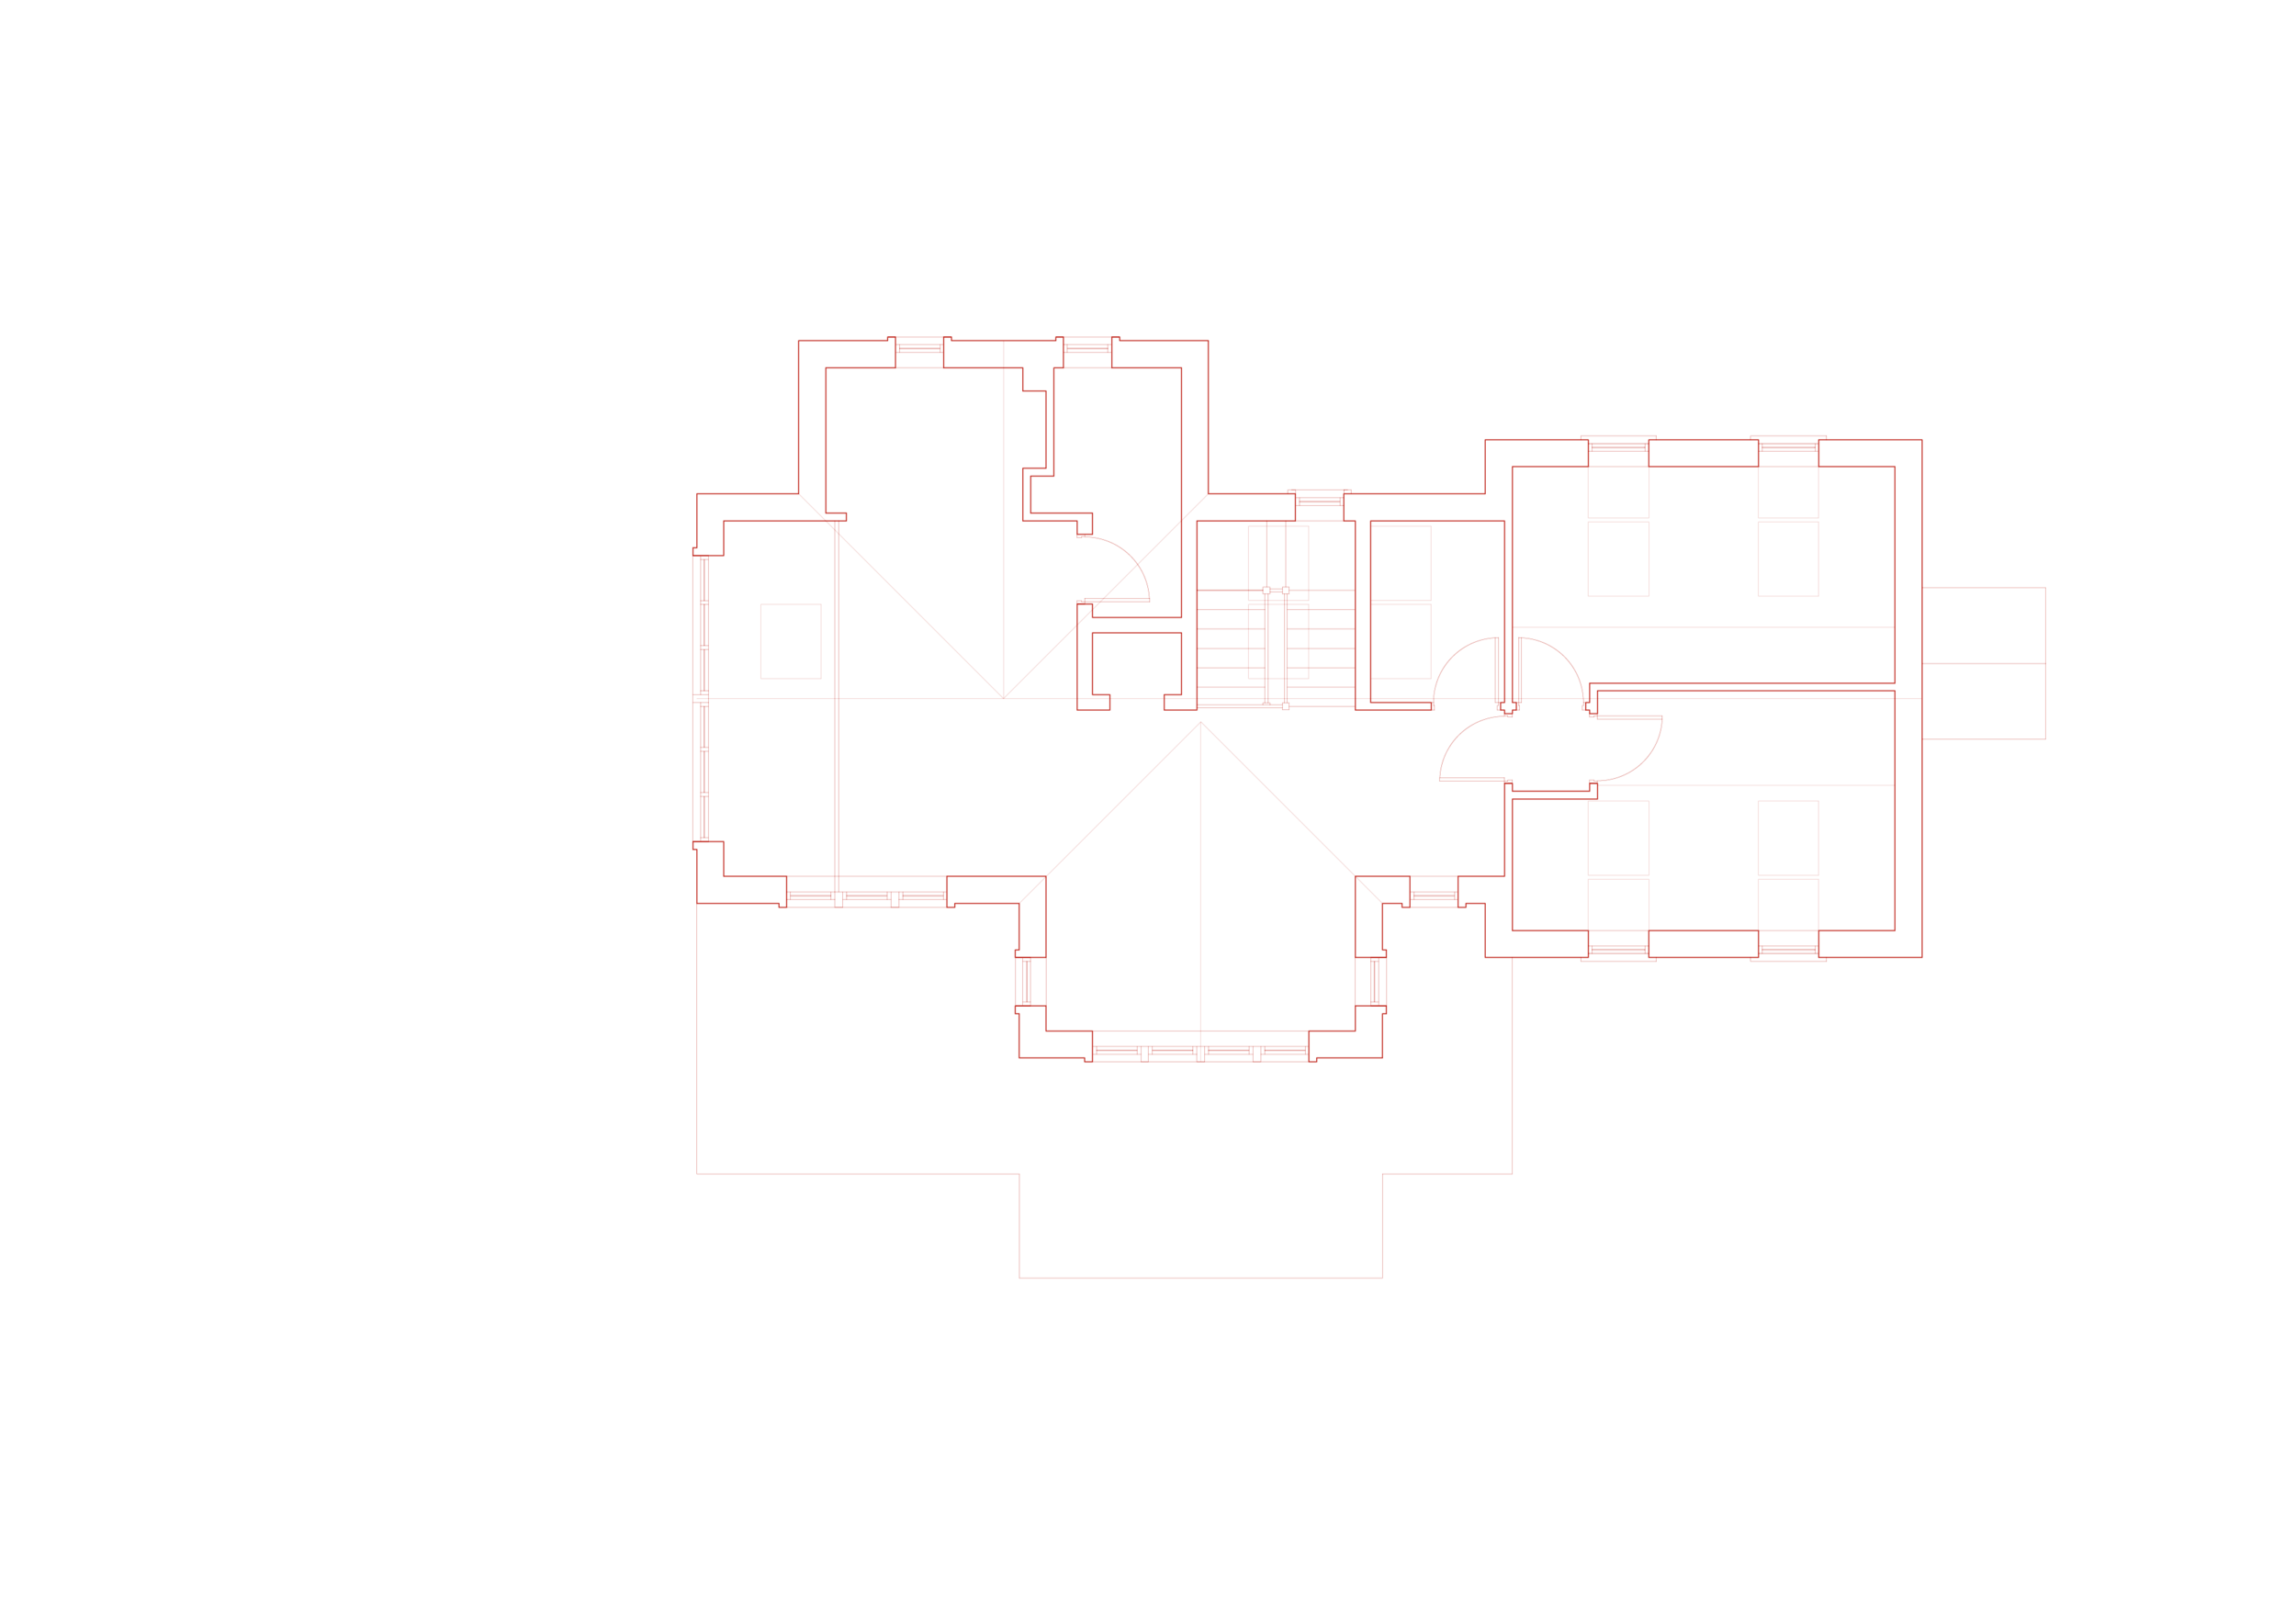 Hillside House Plan 3 - Hebden Bridge Architects - Samuel Kendall Associates.png